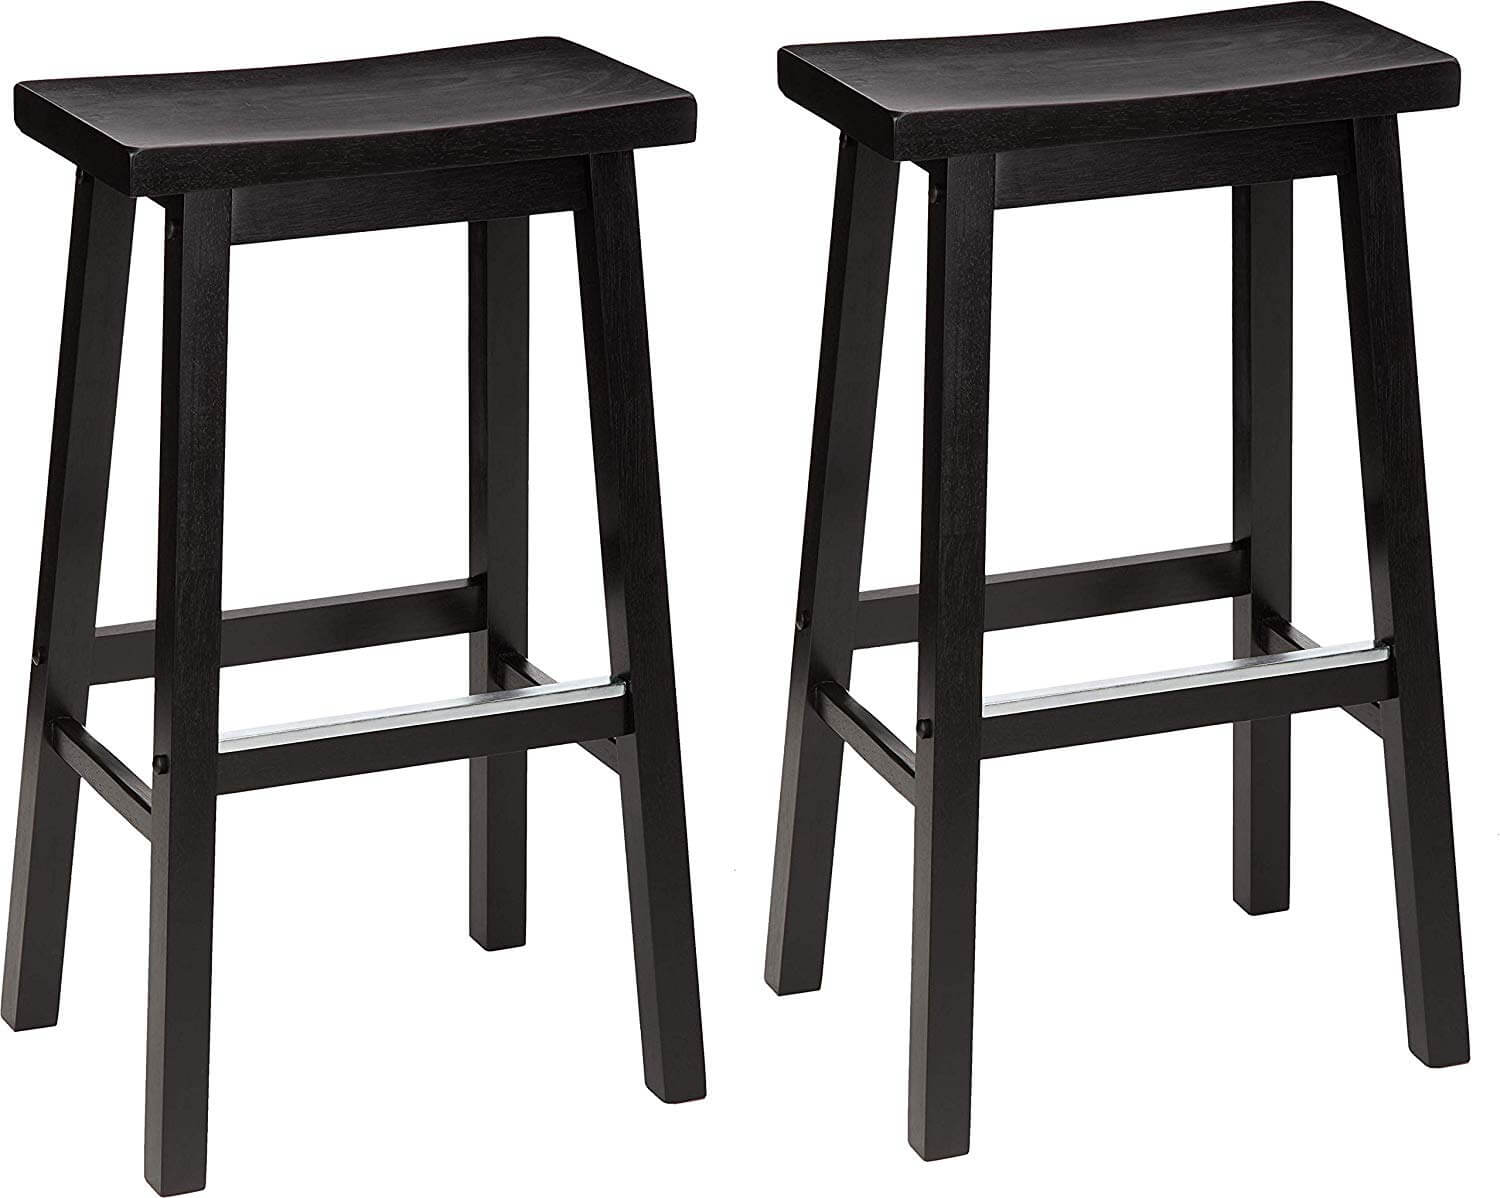 Classic Solid Wood Saddle-Seat Kitchen Counter Stool Set of 2